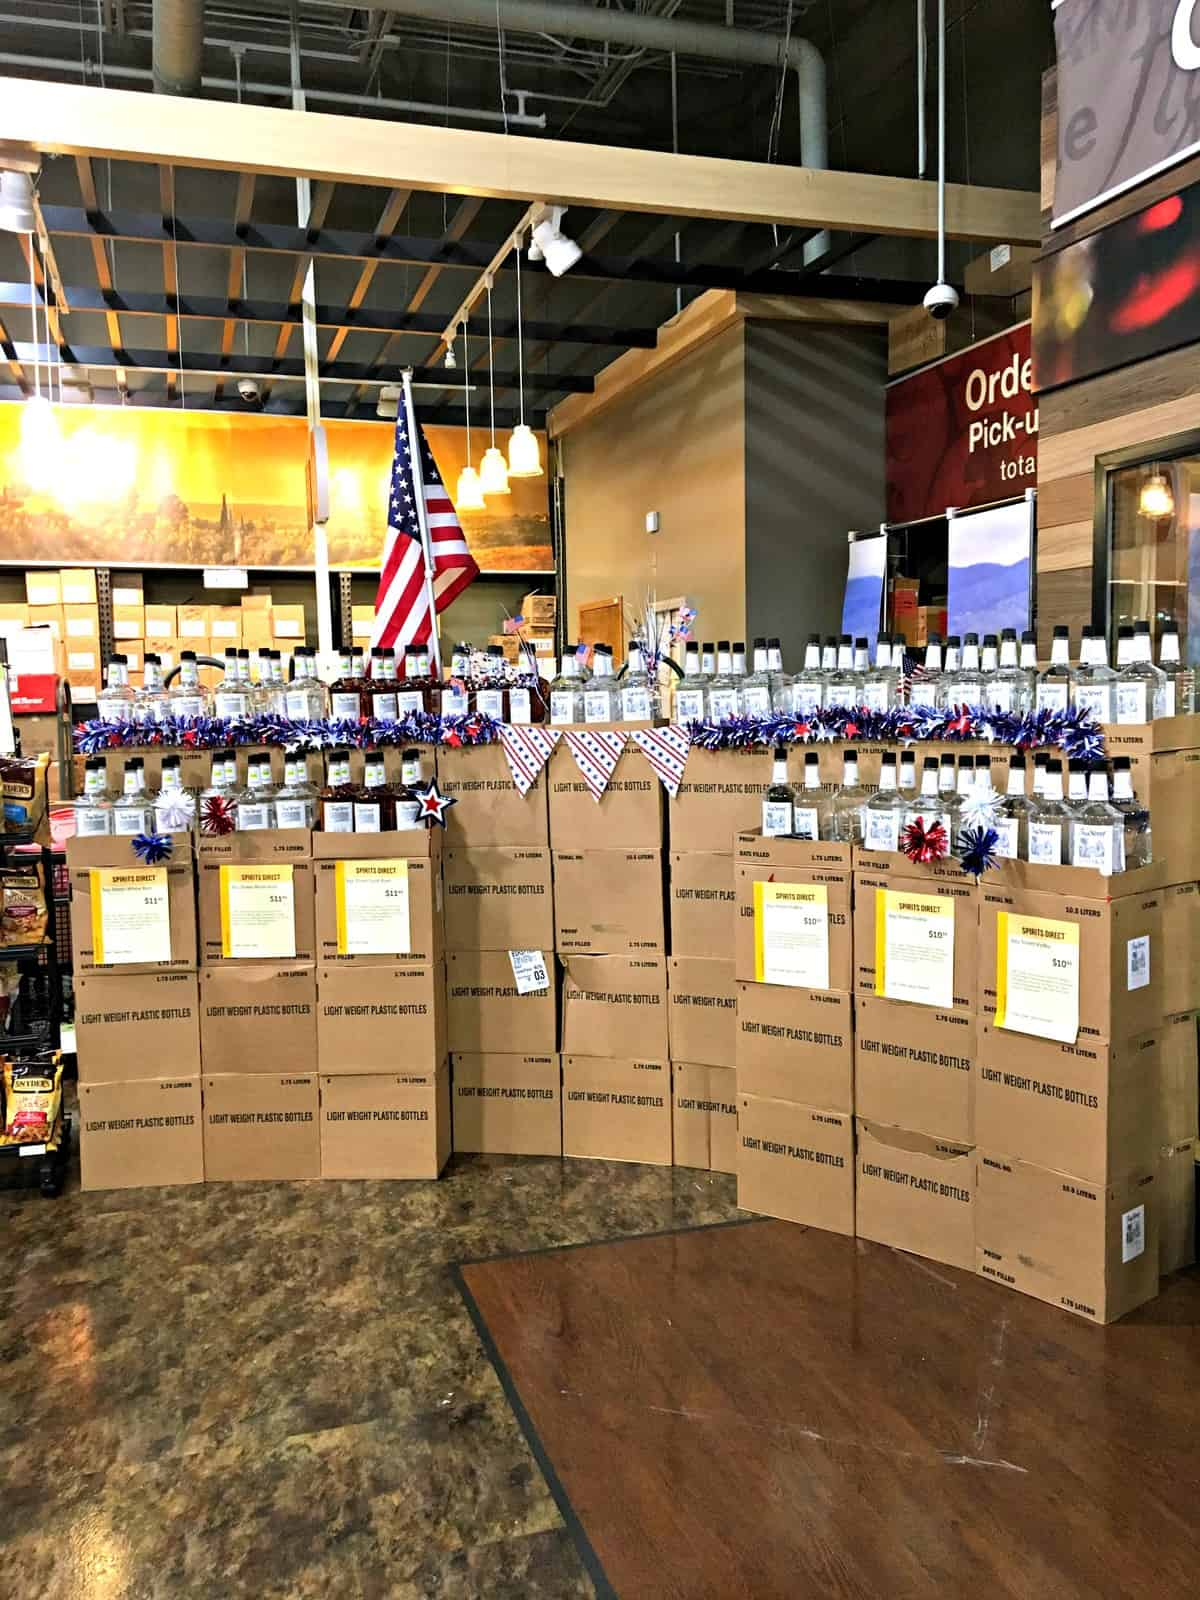 Total Wine makes entertaining easy with their one-stop shop for every party drink you could think of